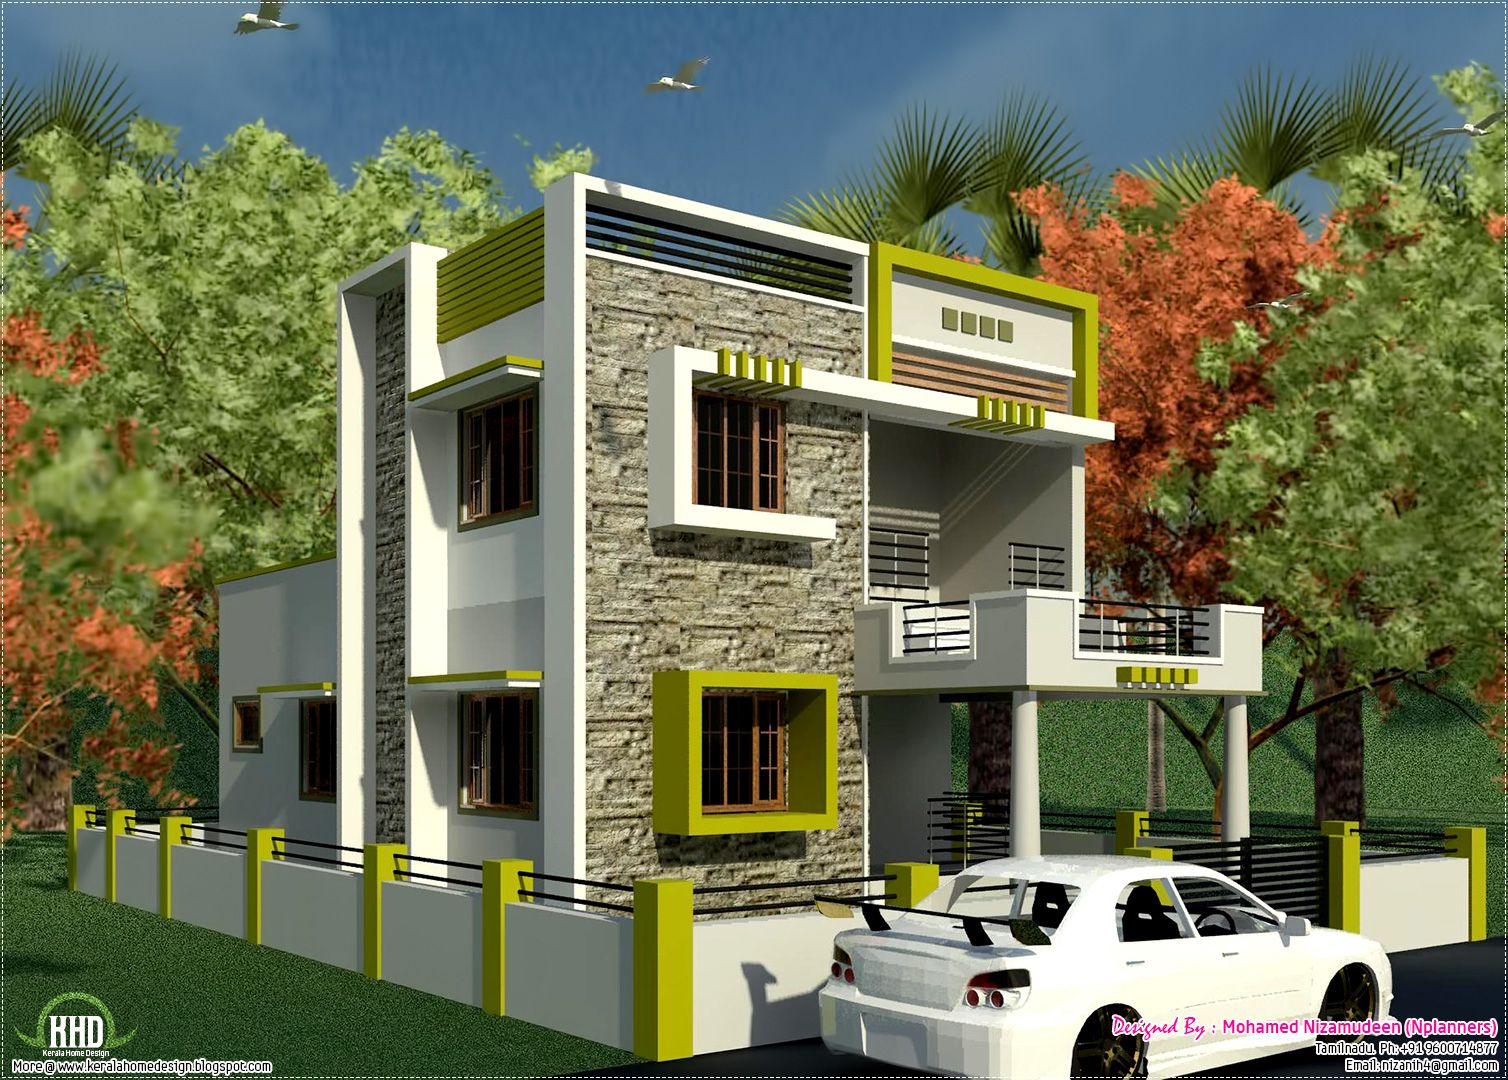 Small house with car park design tobfav com ideas for for New small home designs in india